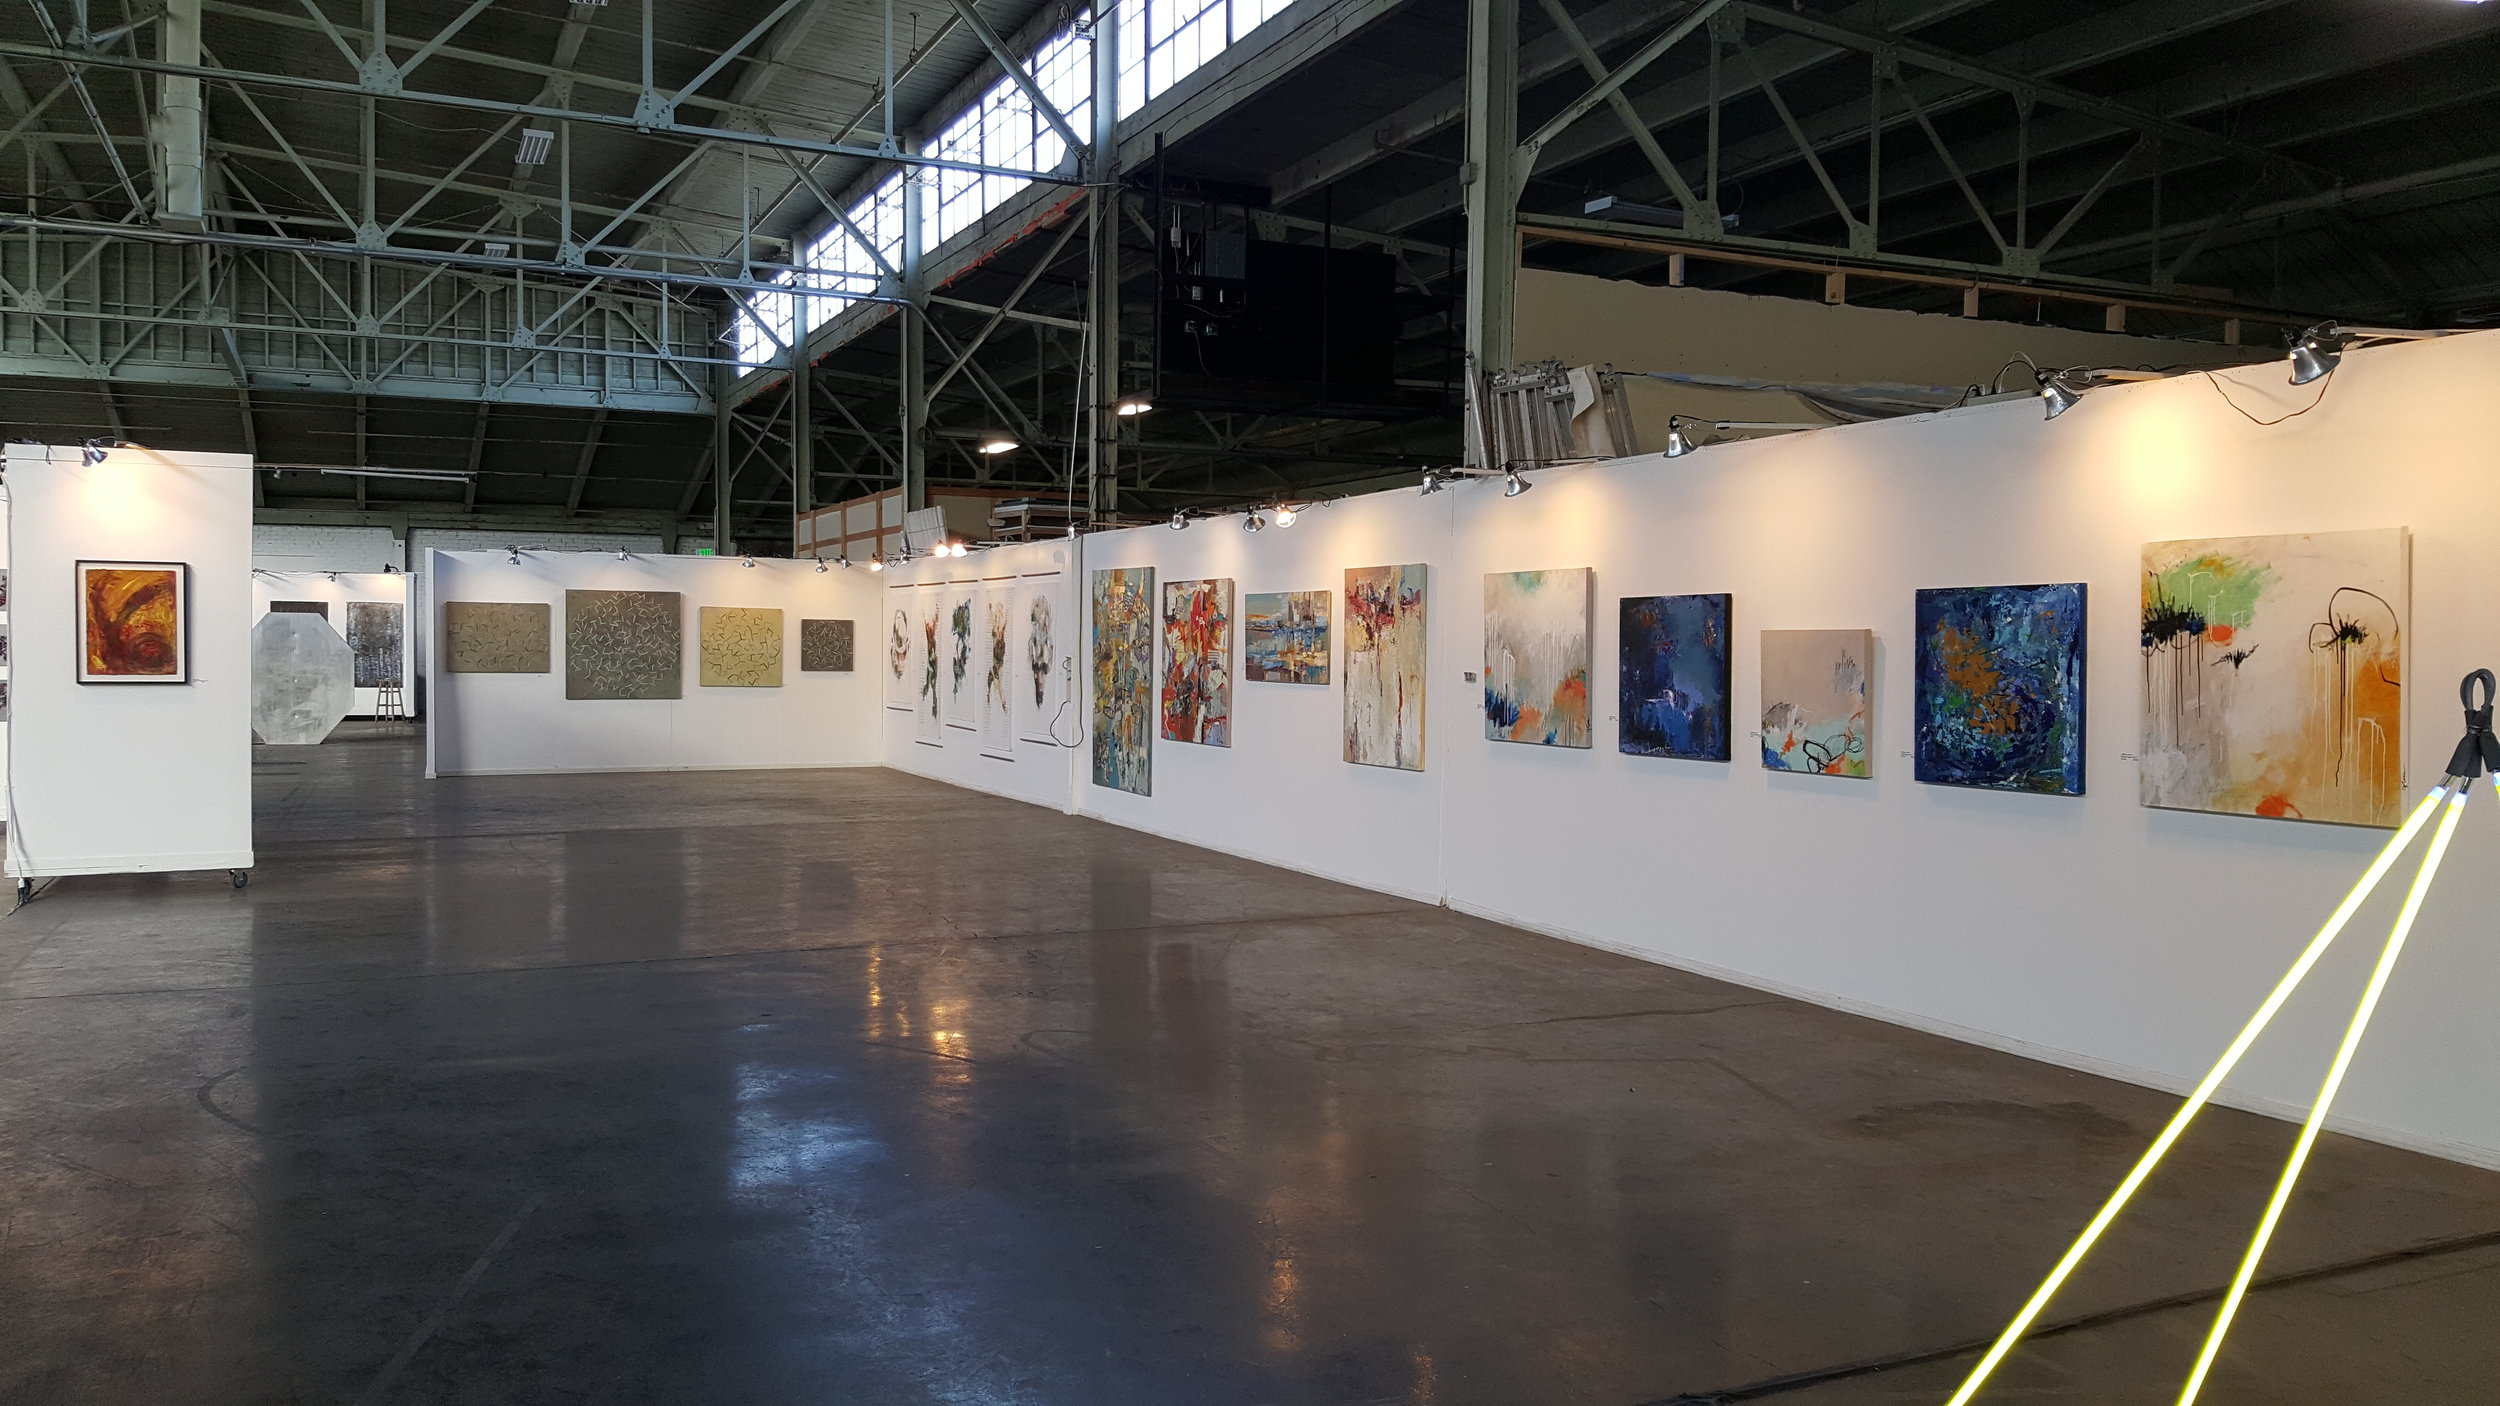 Group Show at American Steel, Oakland, CA (2015)